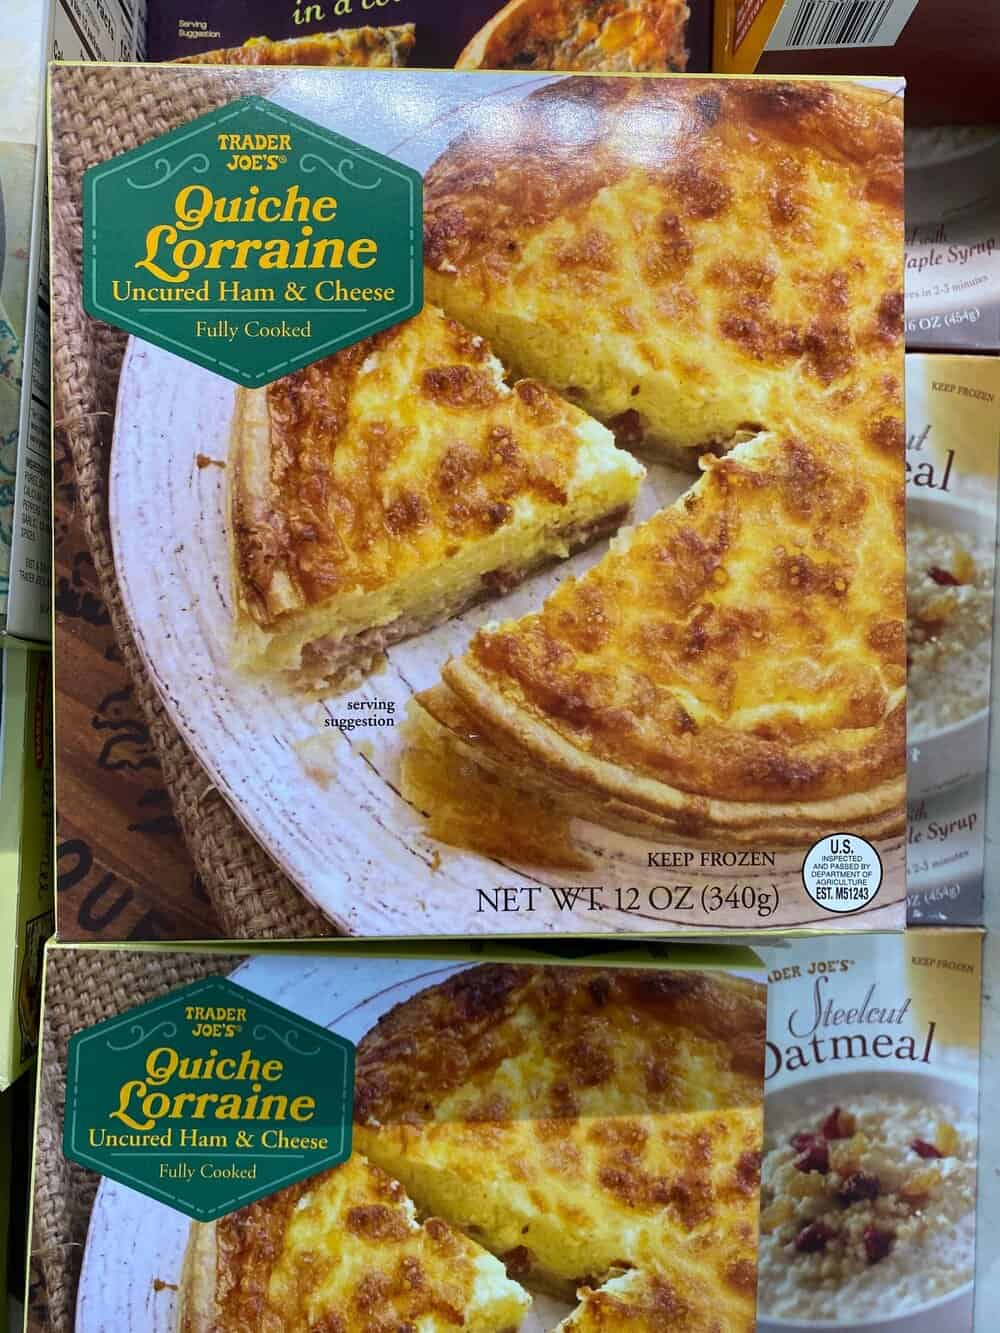 french finds at trader joes everyday parisian